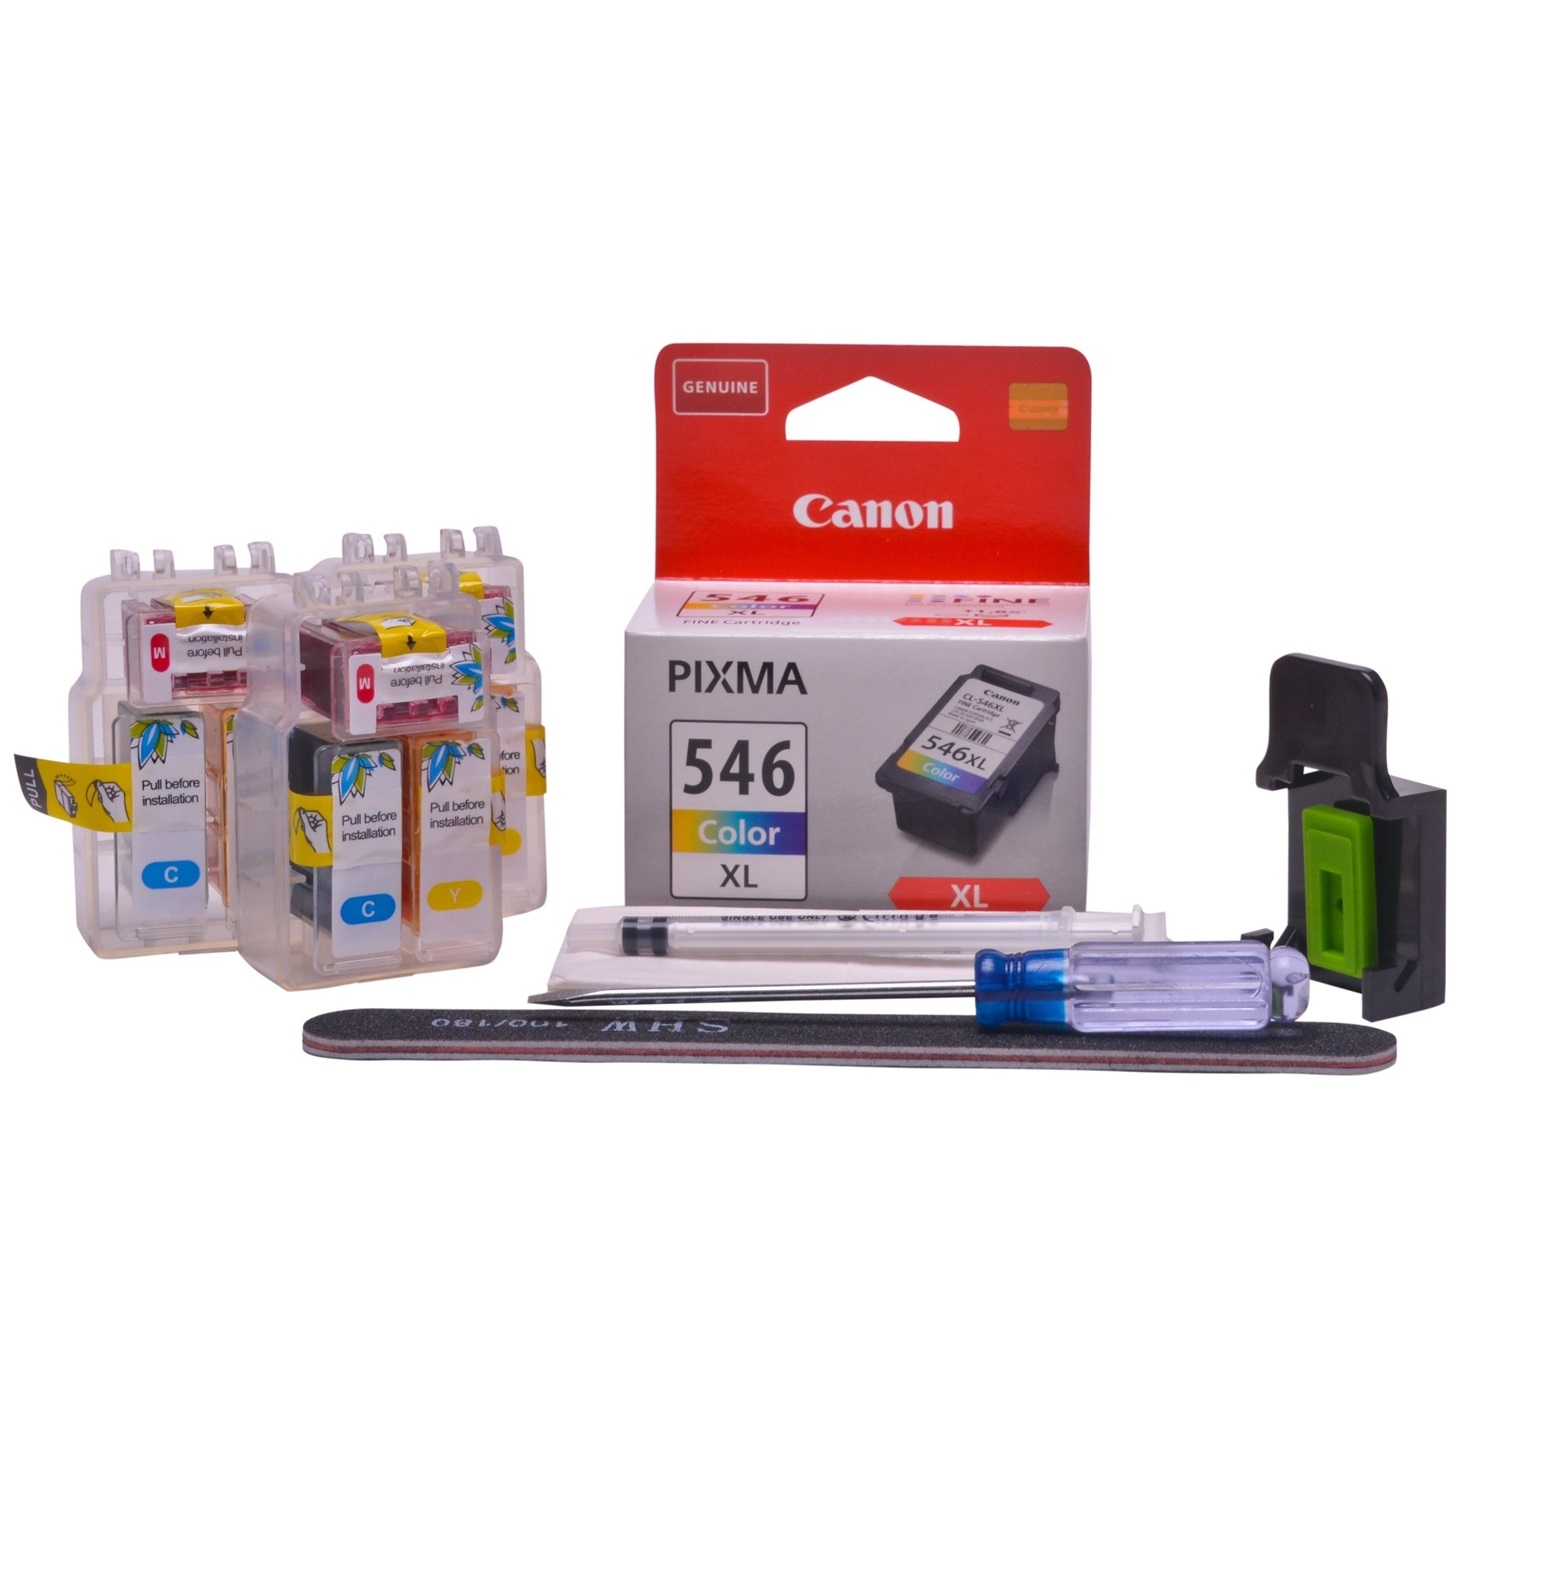 Refillable CL-546XL Colour Pod Cheap printer cartridges for Canon Pixma TS3151 CL-546 dye ink